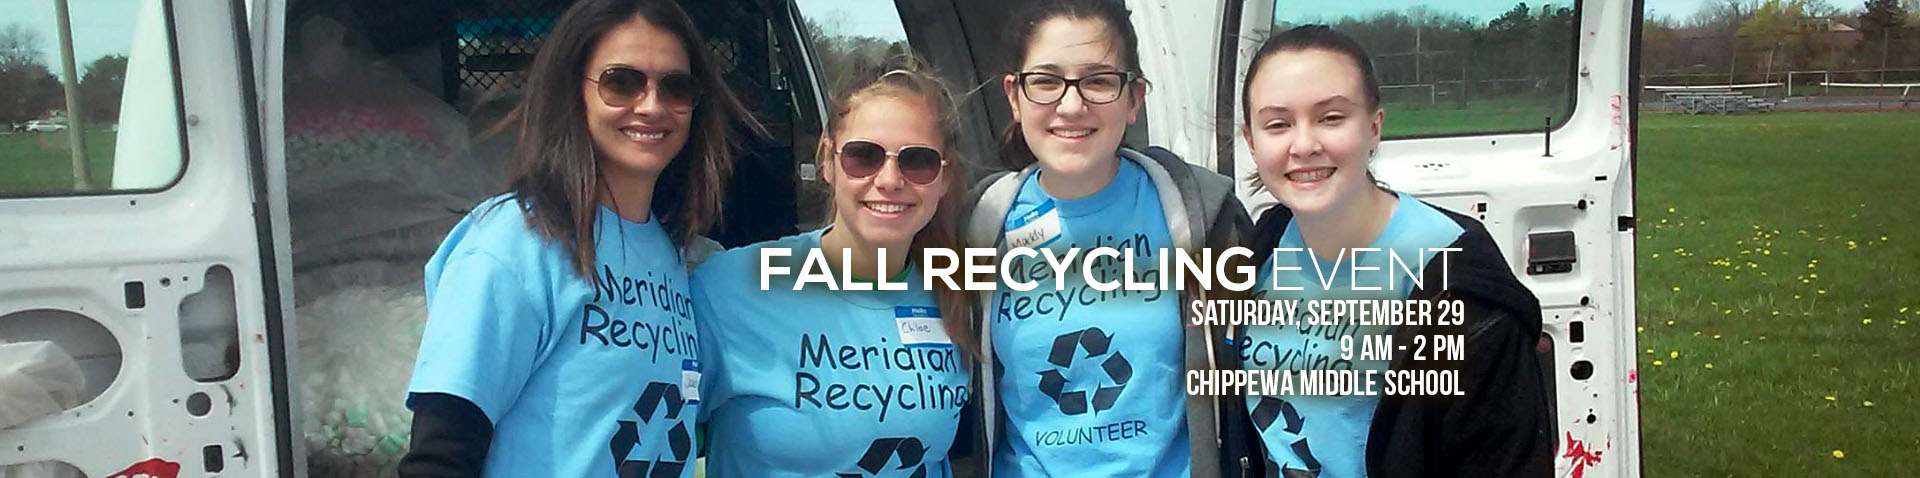 Fall Recycling Event 2018